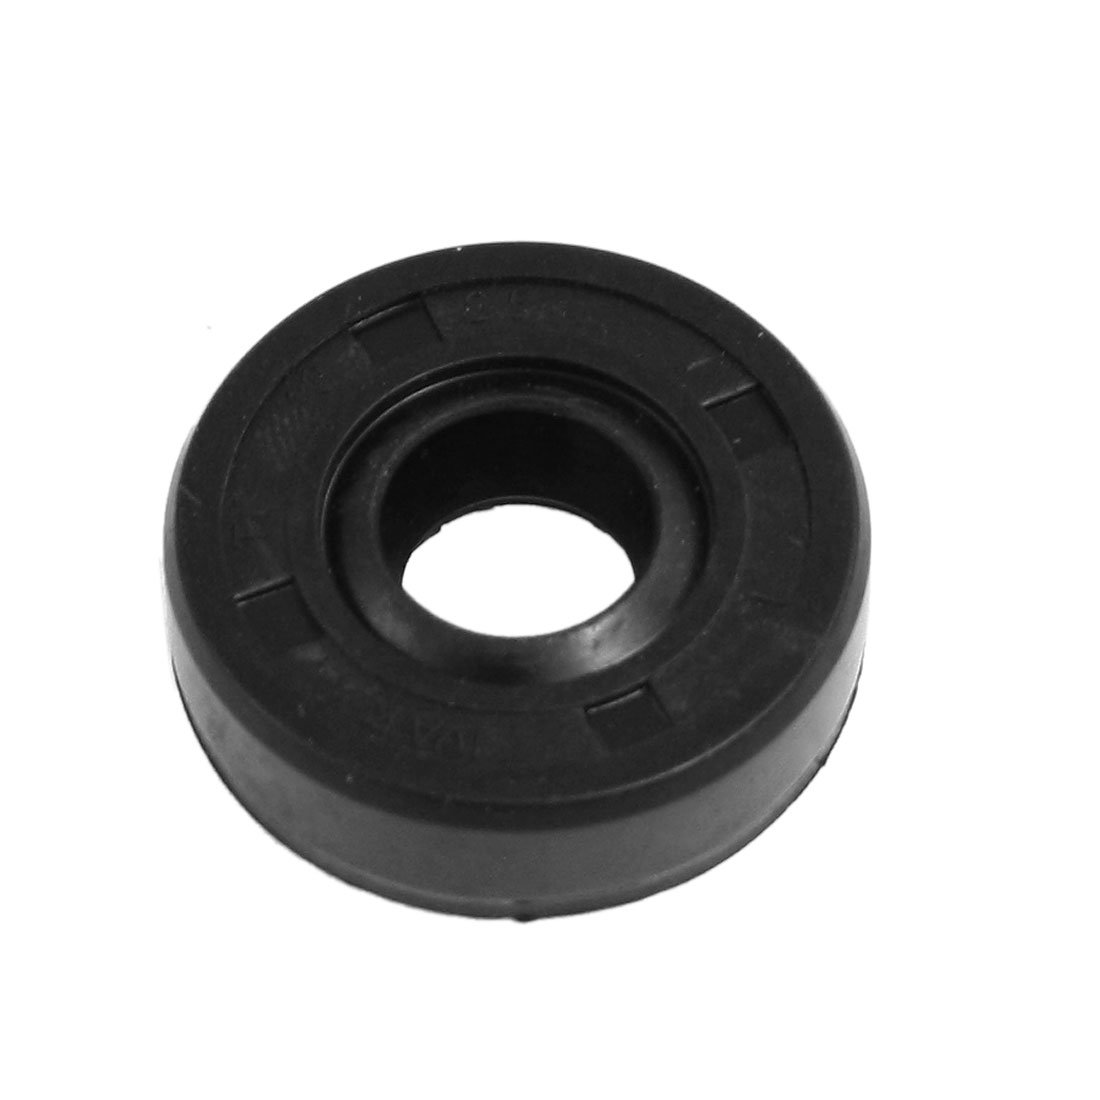 sourcing map Oil Seal, TC 22mm x 34mm x 7mm, Nitrile Rubber Cover Double Lip